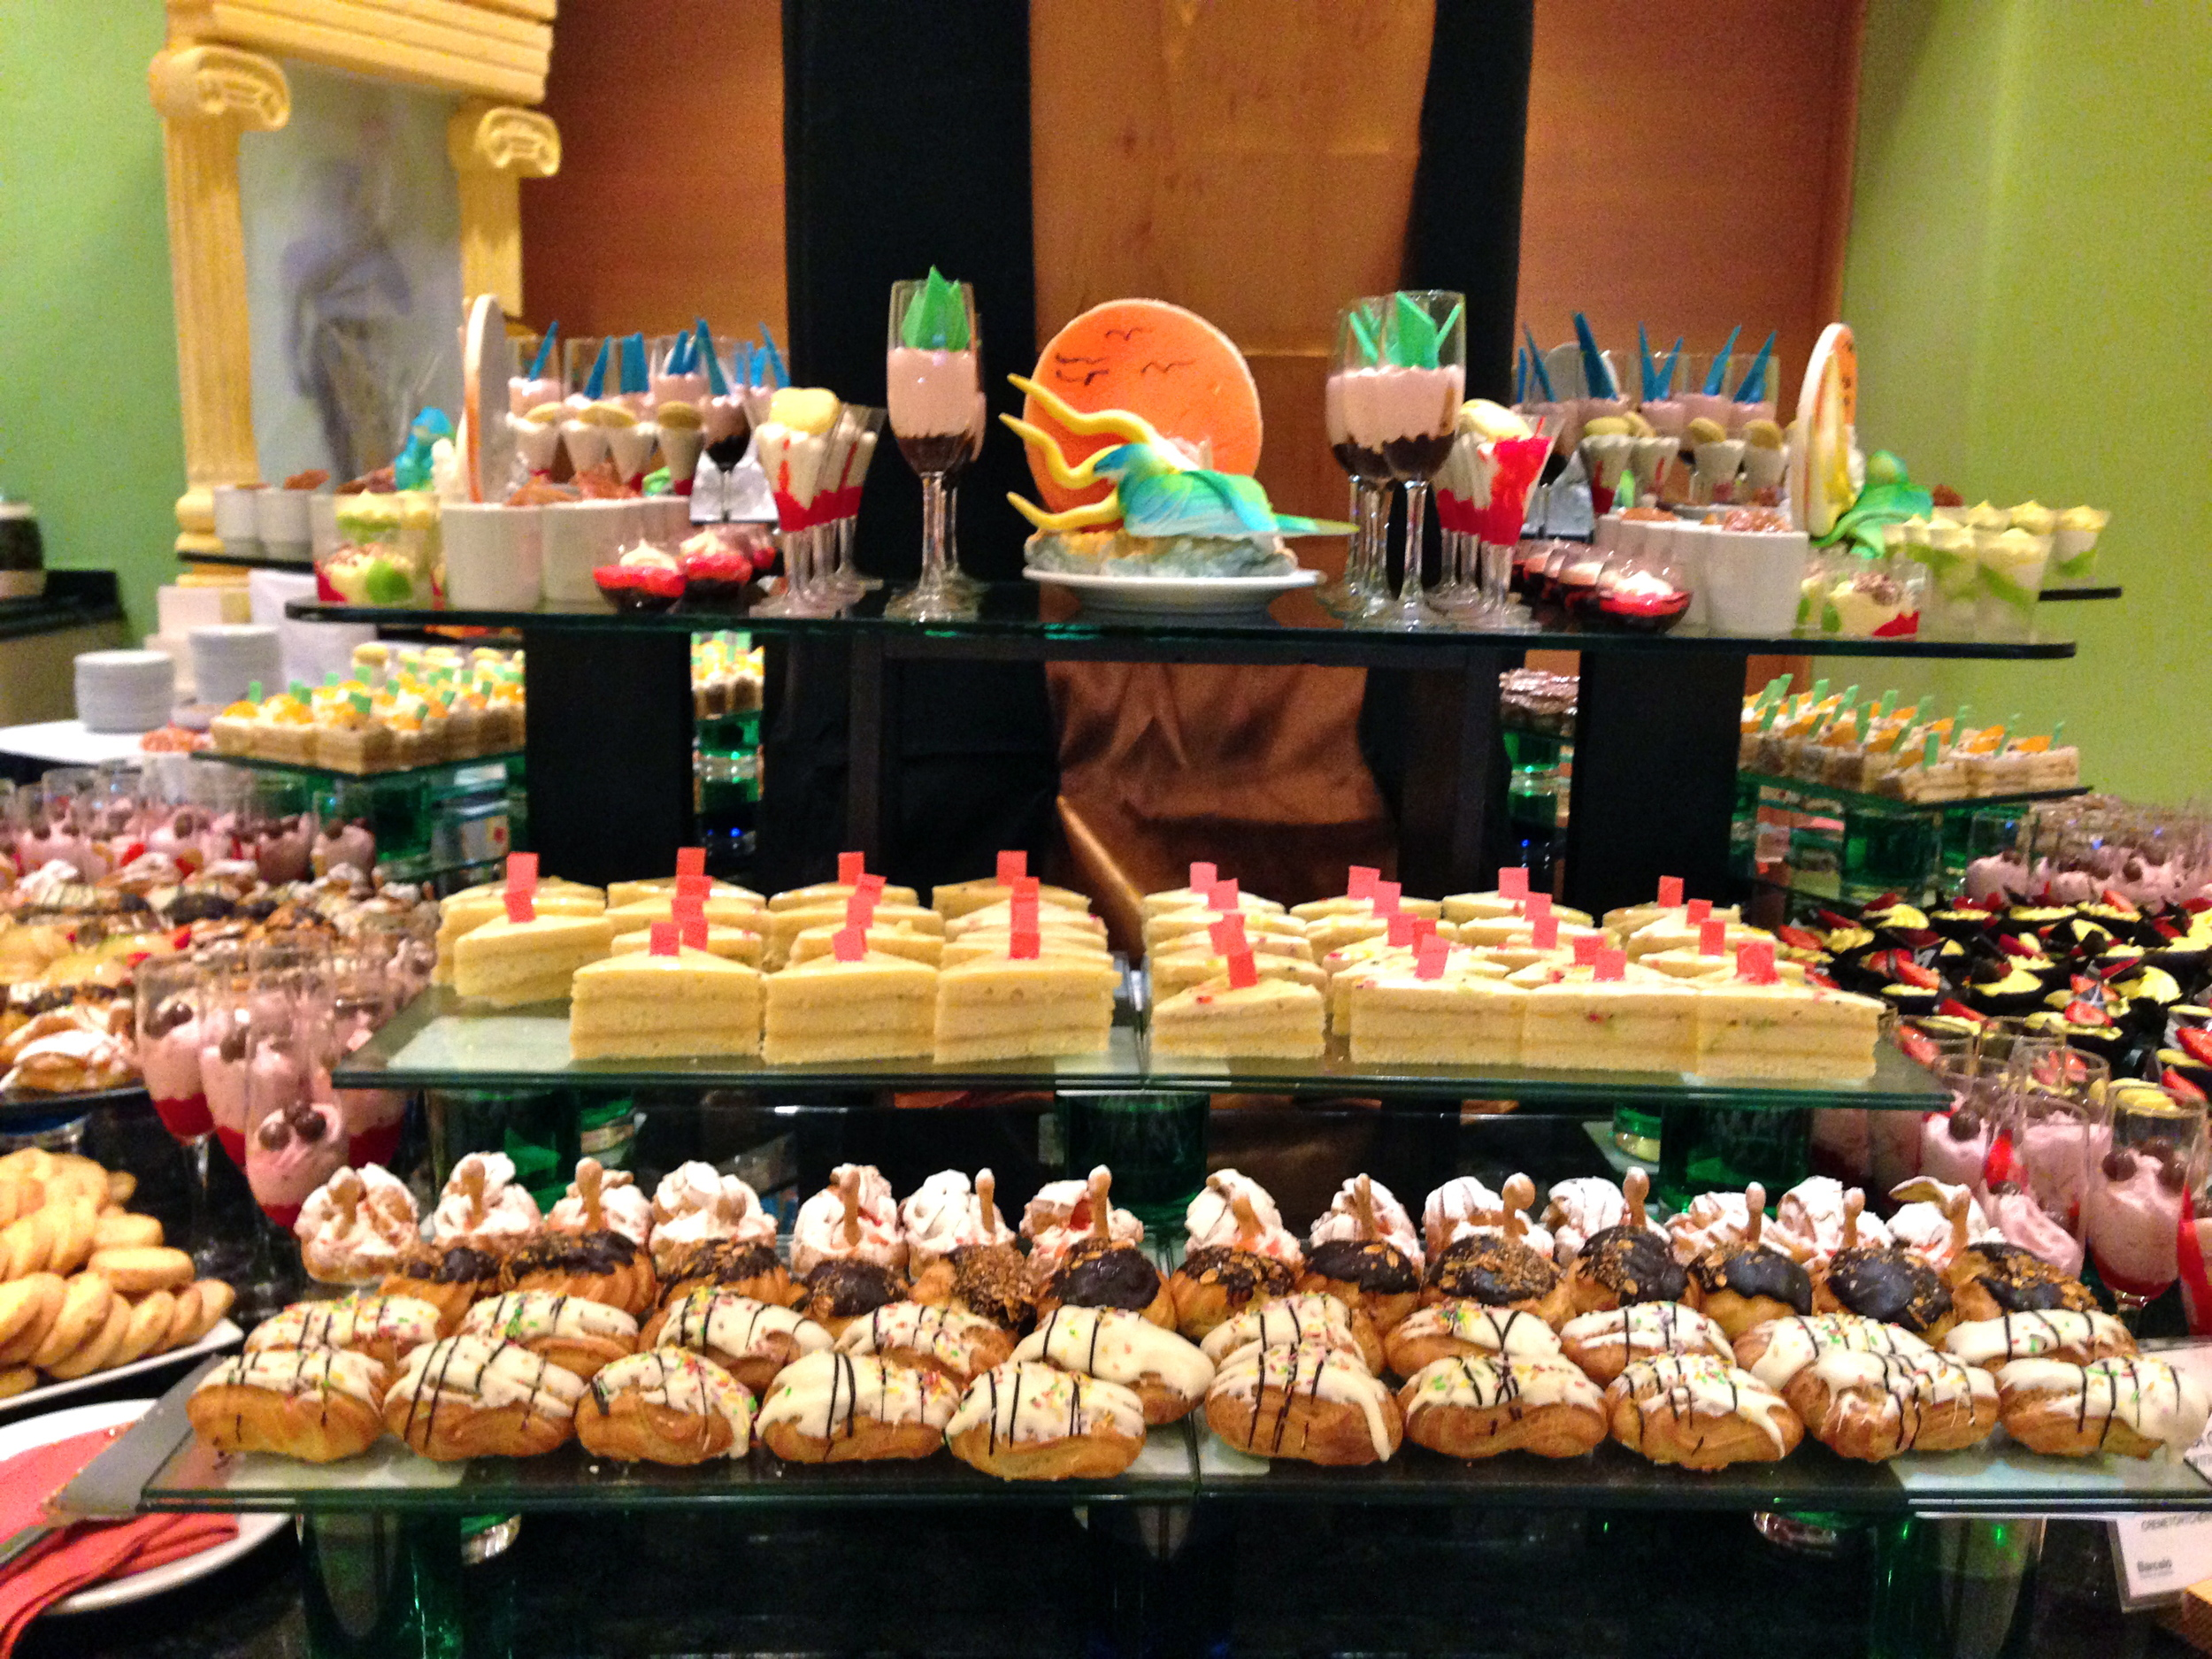 umm, DUHH I had to capture the wonder of this dessert table.